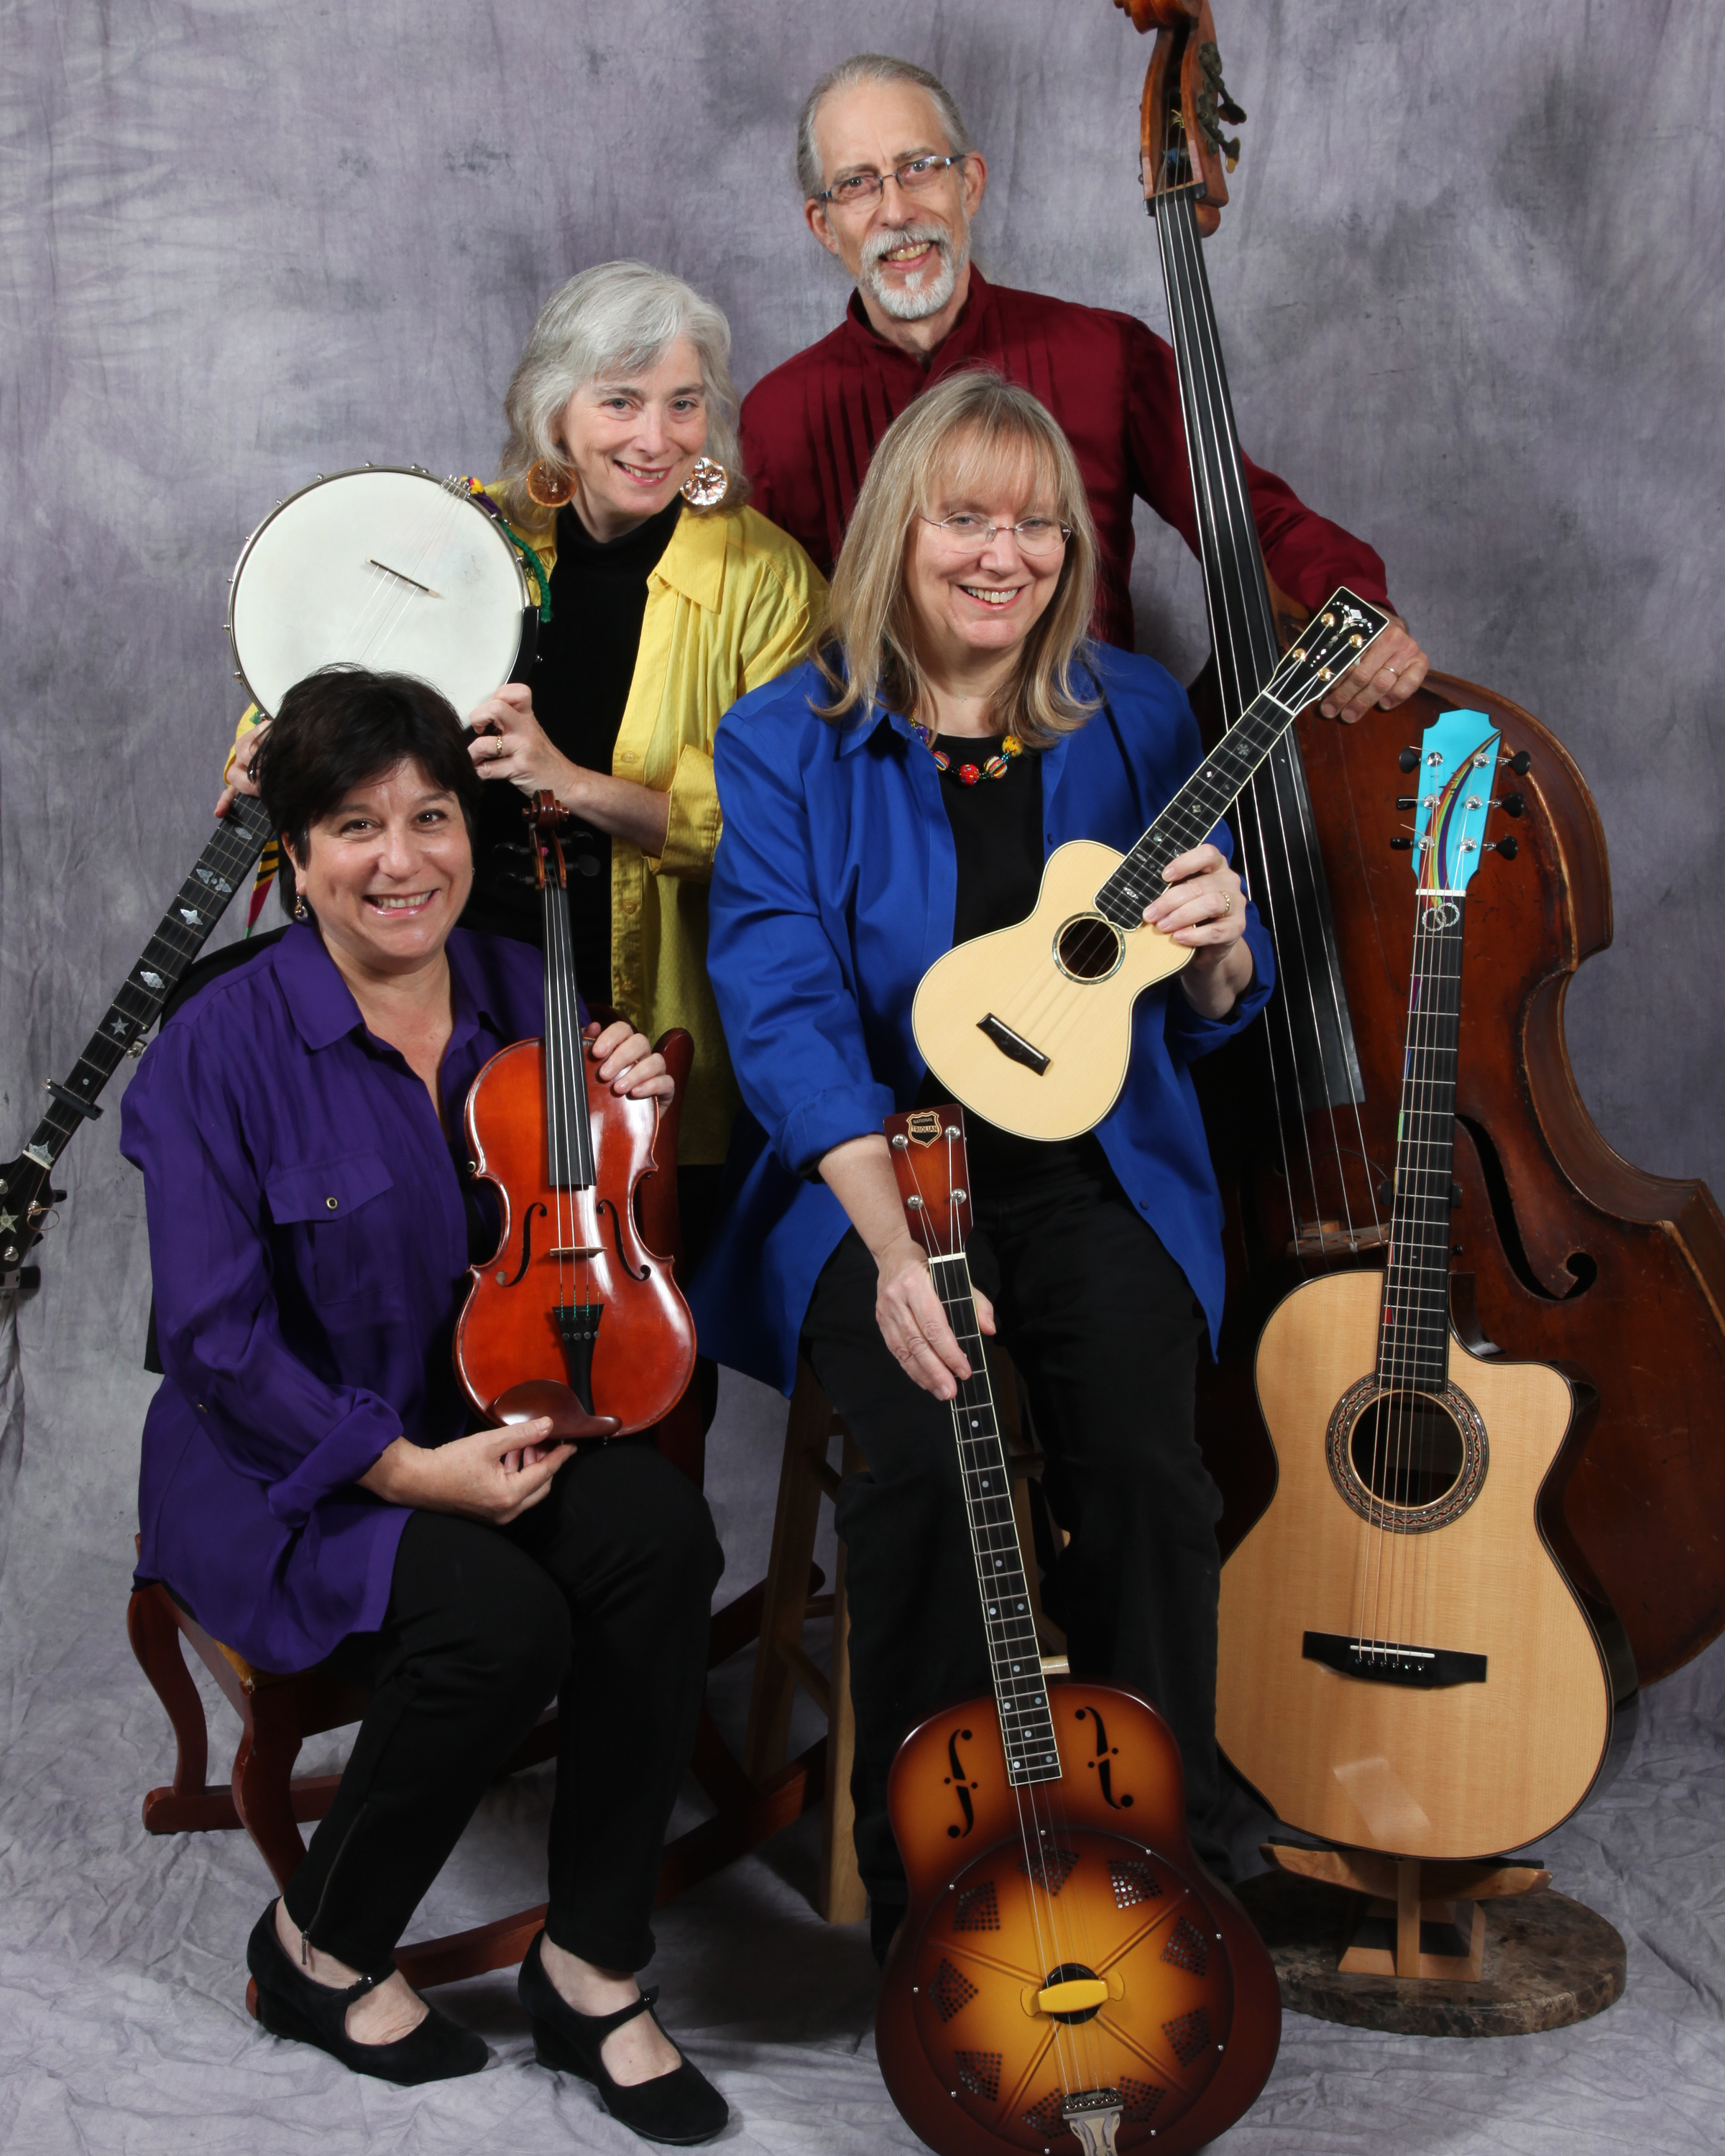 Cathy Fink & Marcy Marxer & The Whynots